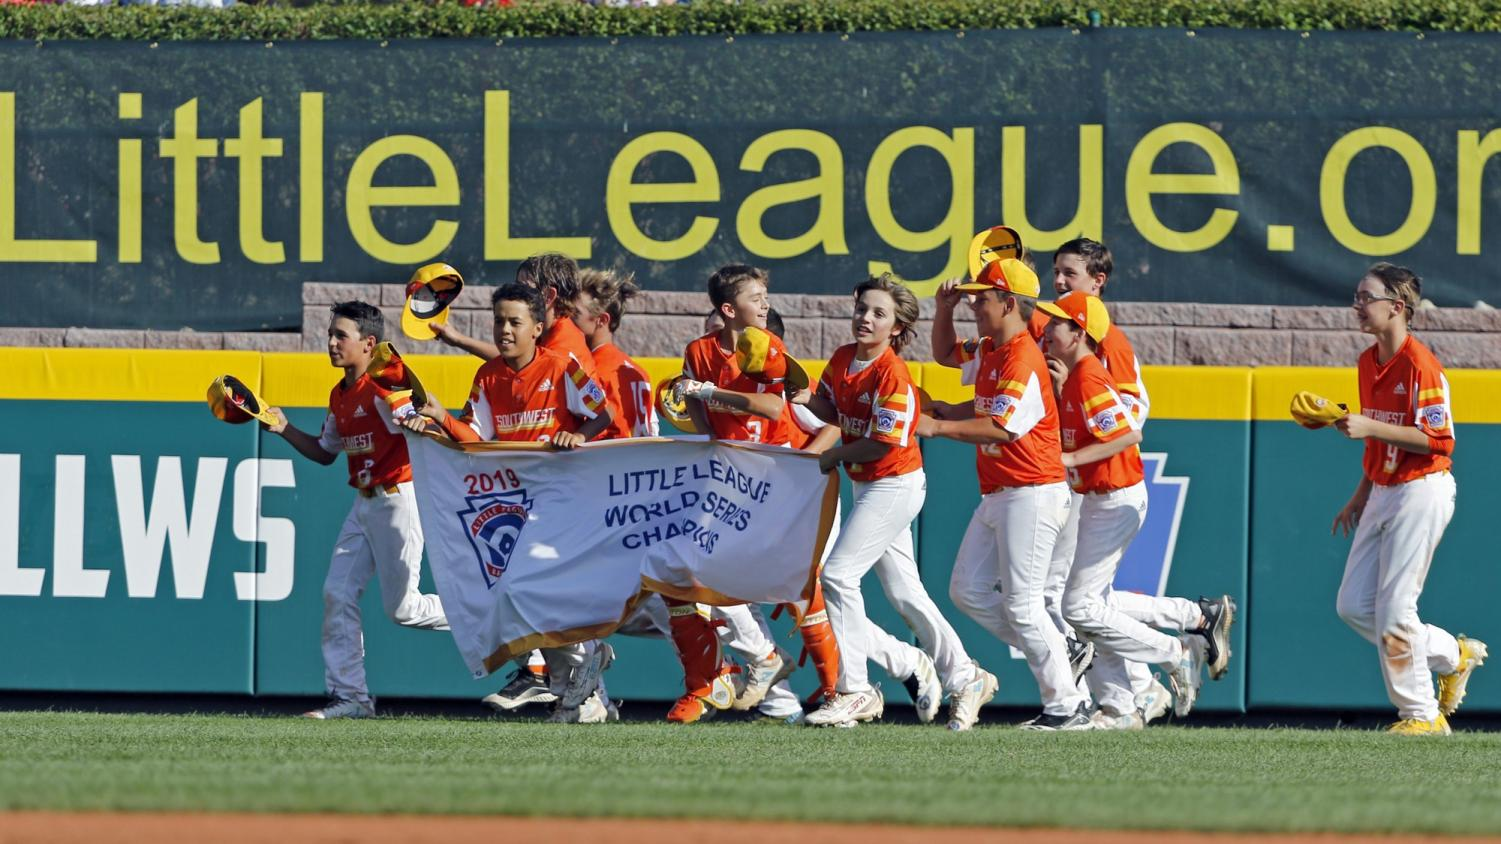 River Ridge, Louisiana's Alton Shorts, River Ridge, Louisiana's Stan Wiltz, Ryder Planchard and Derek DeLatte carry the championship banner around the stadium as they celebrate the 8-0 win against Curacao in the Little League World Series Championship game in South Williamsport, Pa., Sunday, Aug. 25, 2019. (AP Photo/Tom E. Puskar)